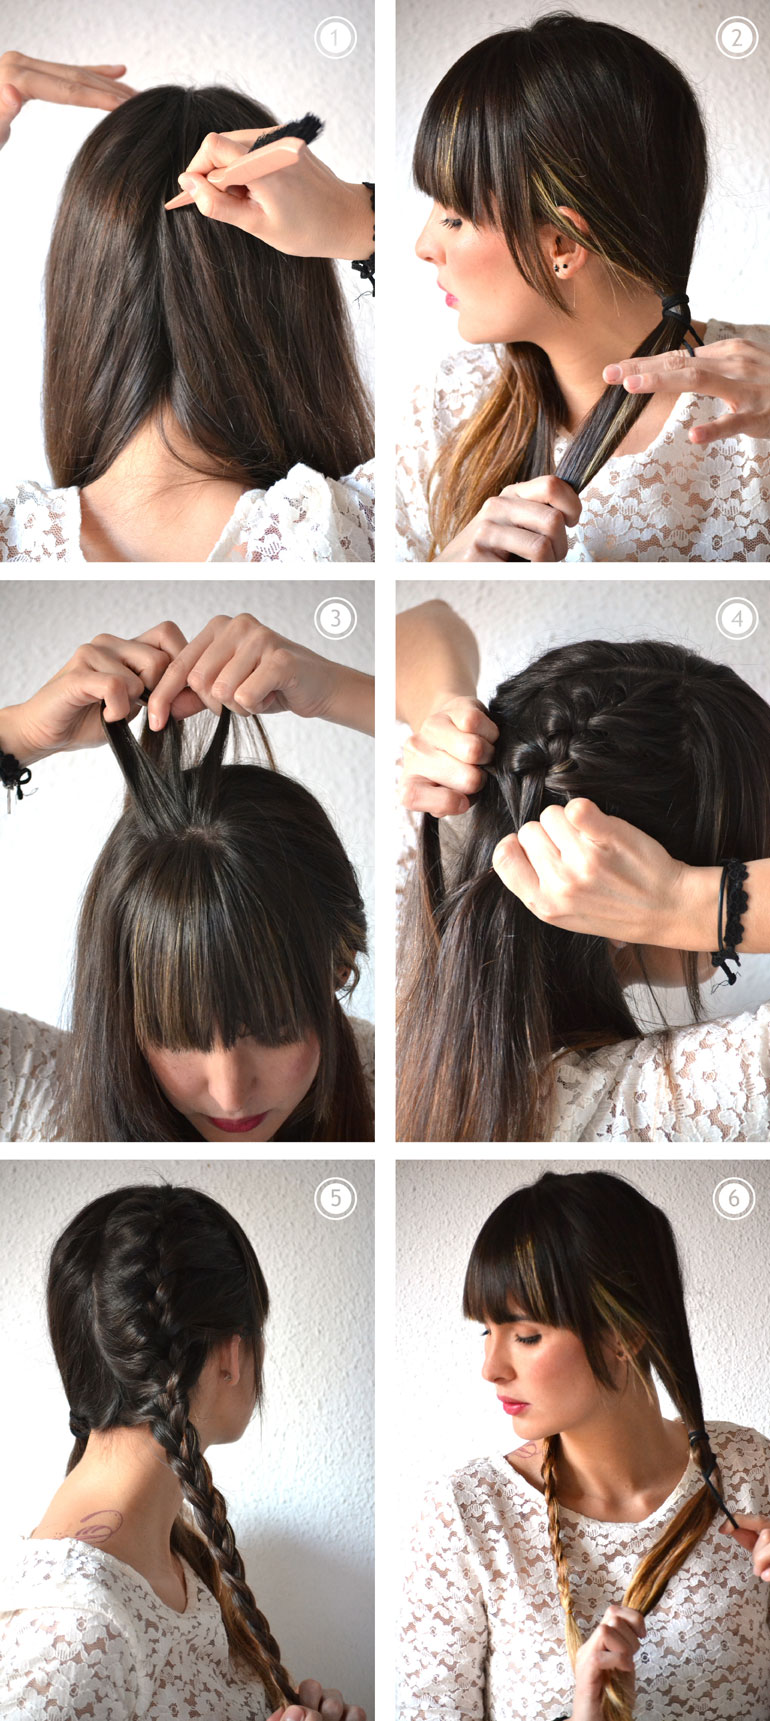 10 Fabulous Diy Hairstyles With Hair Accessories Pretty